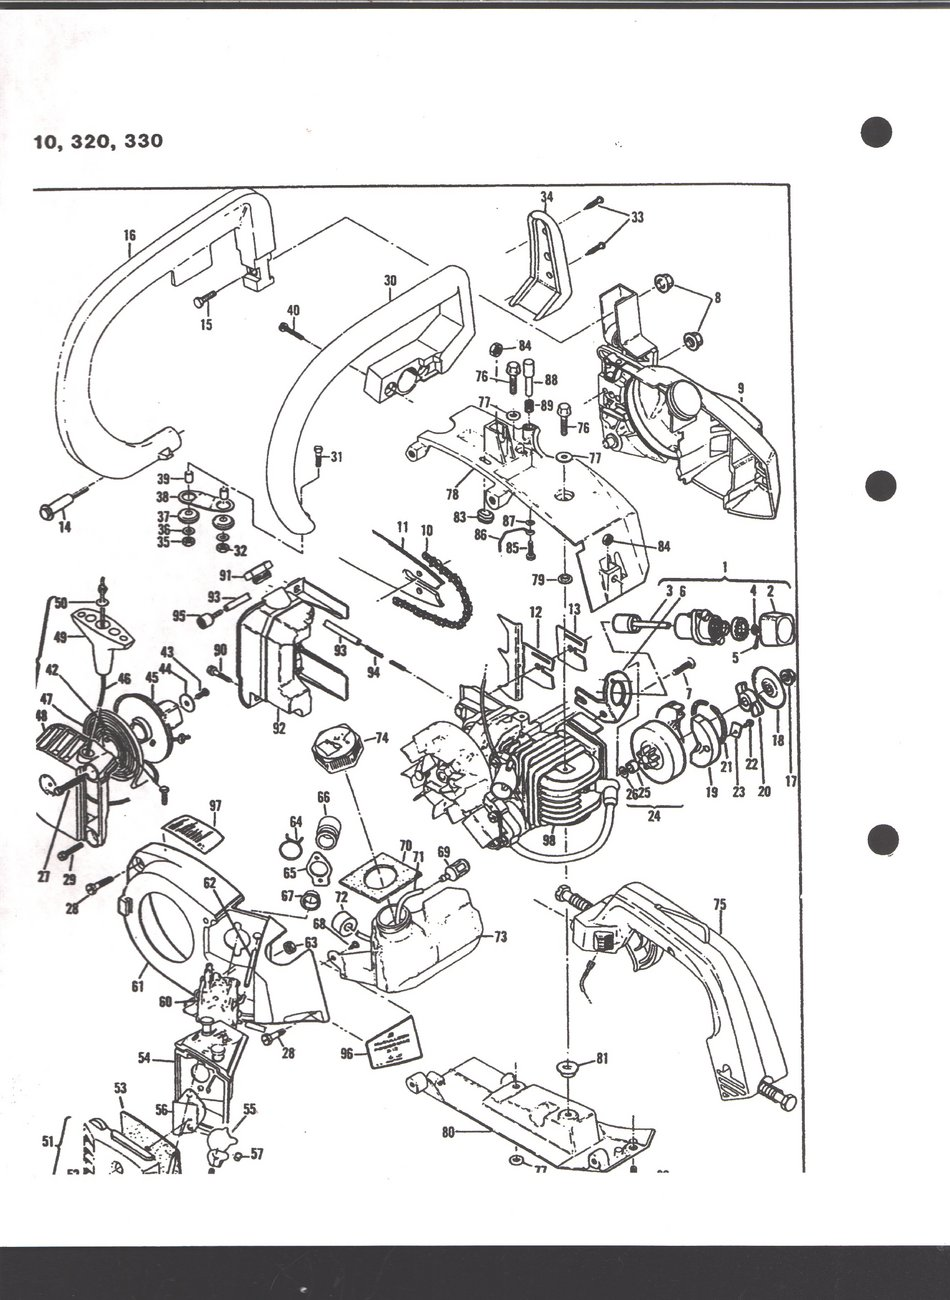 Mcculloch Mac 3516 Chainsaw Parts. Diagram. Auto Wiring